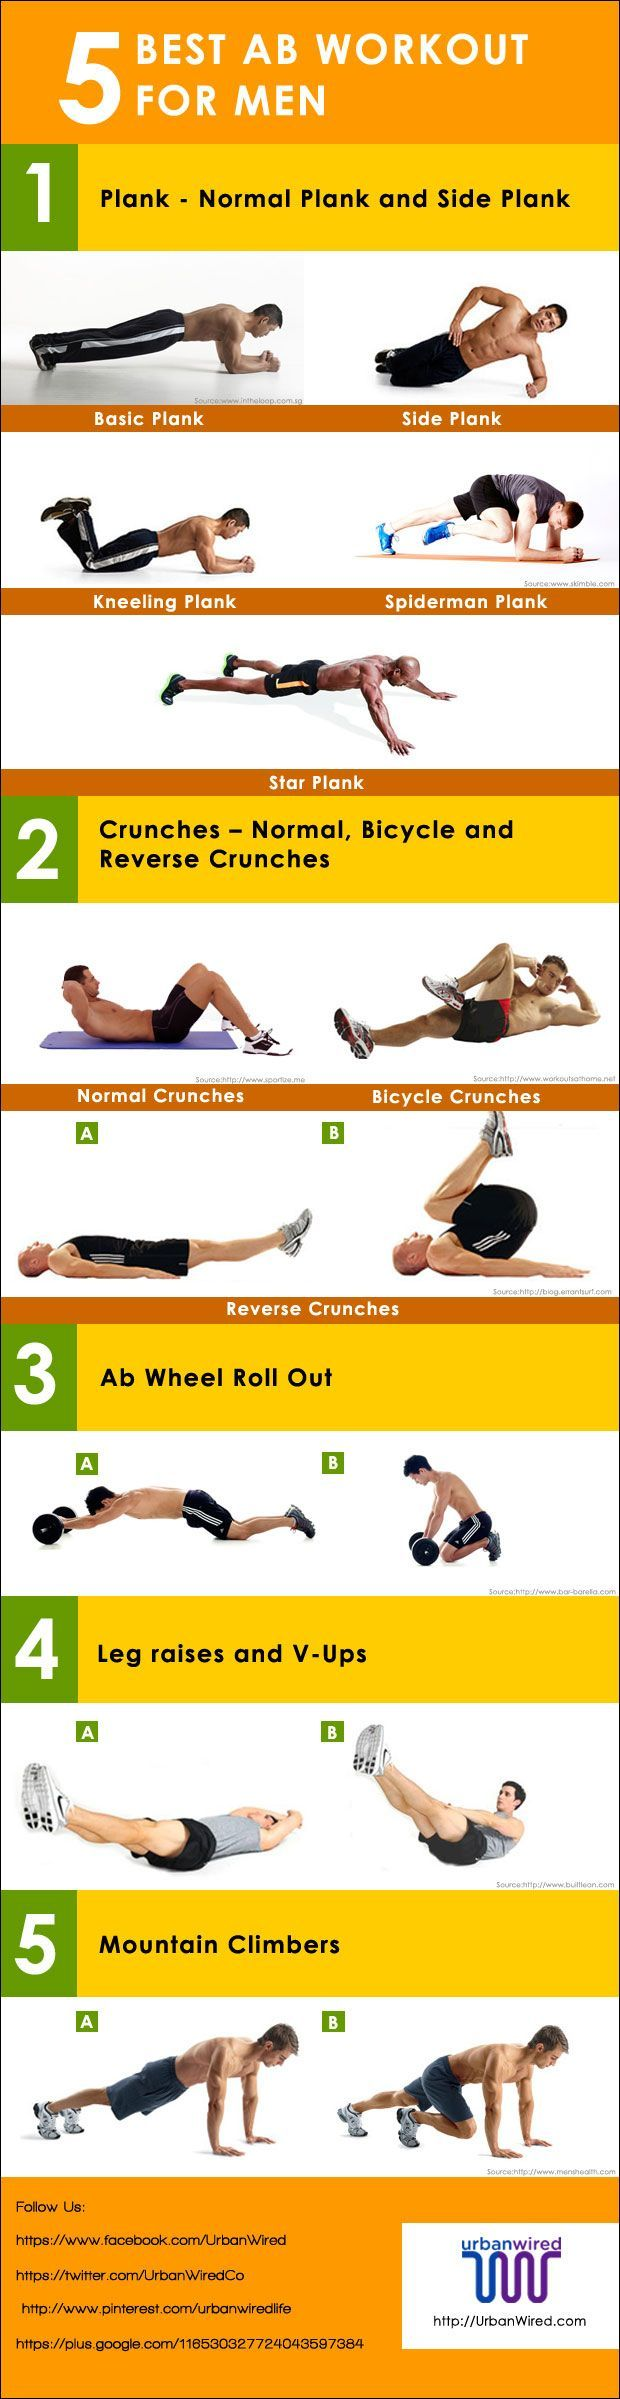 Workout Plan For Men At Home 5 Best Ab Workouts For Men To Build Six Pack  Physique Workout